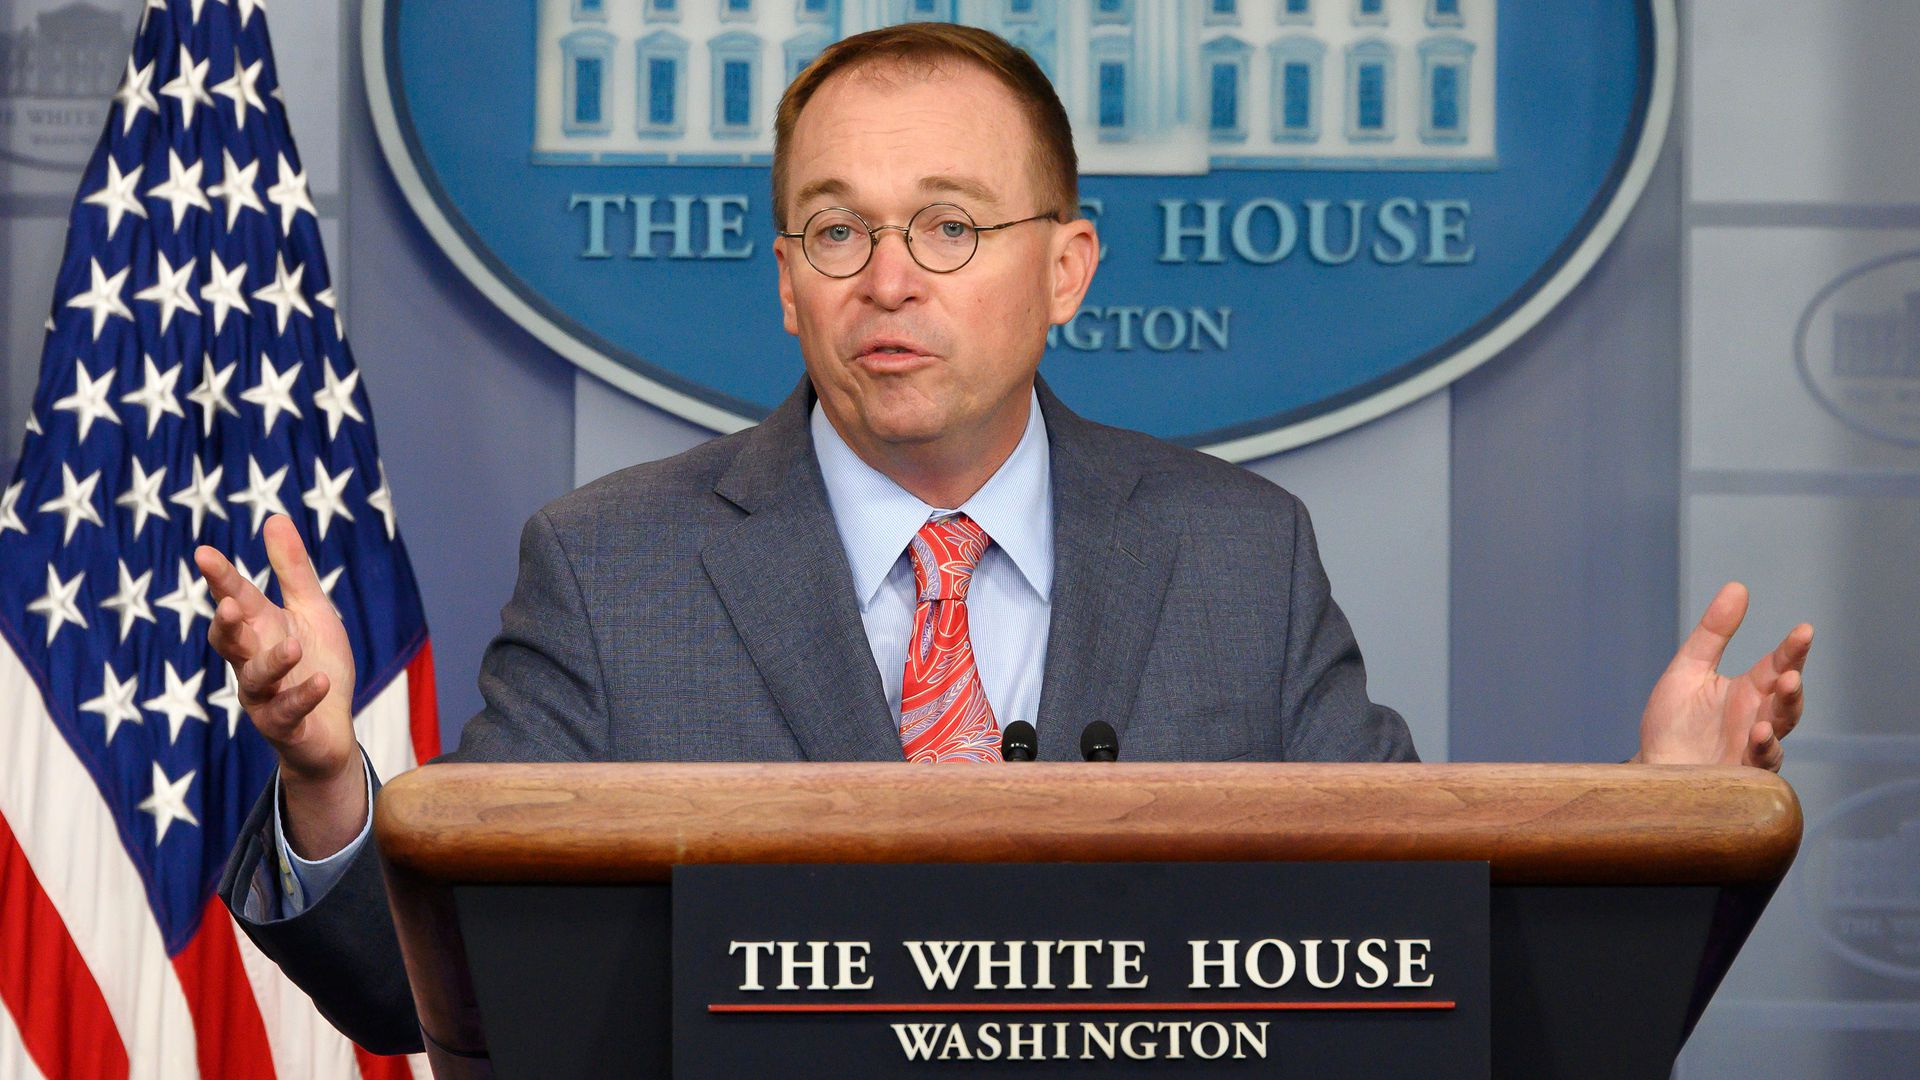 White House Acting Chief of Staff Mick Mulvaney speaks during a press briefing at the White House in Washington, DC, on October 17